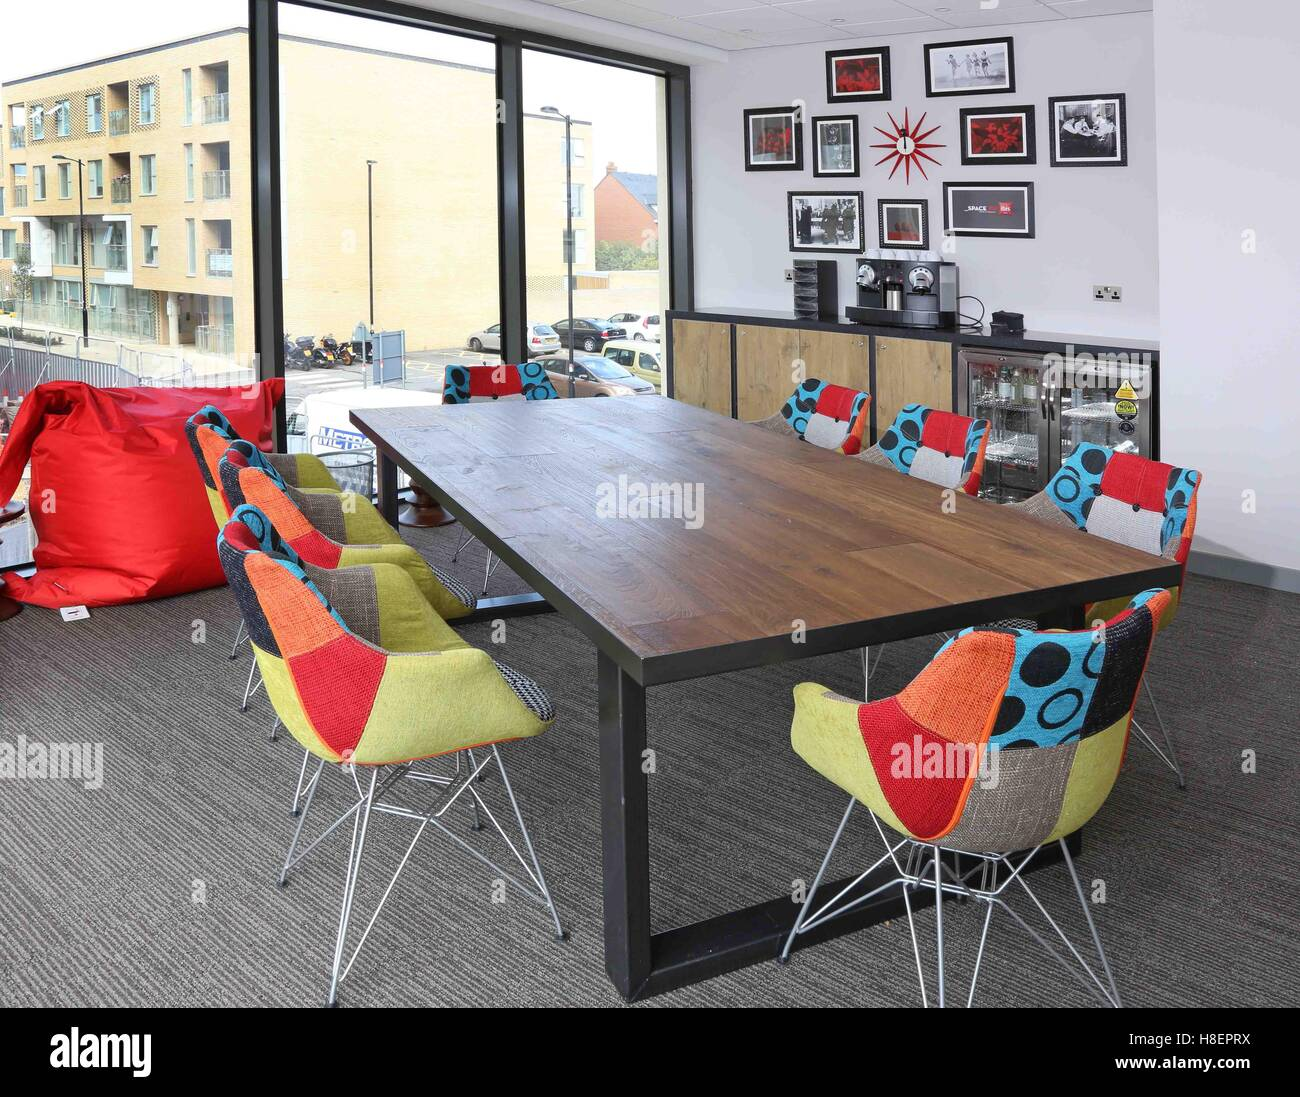 Trendy meeting room in the new Ibis Hotel in Cambridge, UK. Shows multi-coloured fabric chairs, large bean-bag, - Stock Image